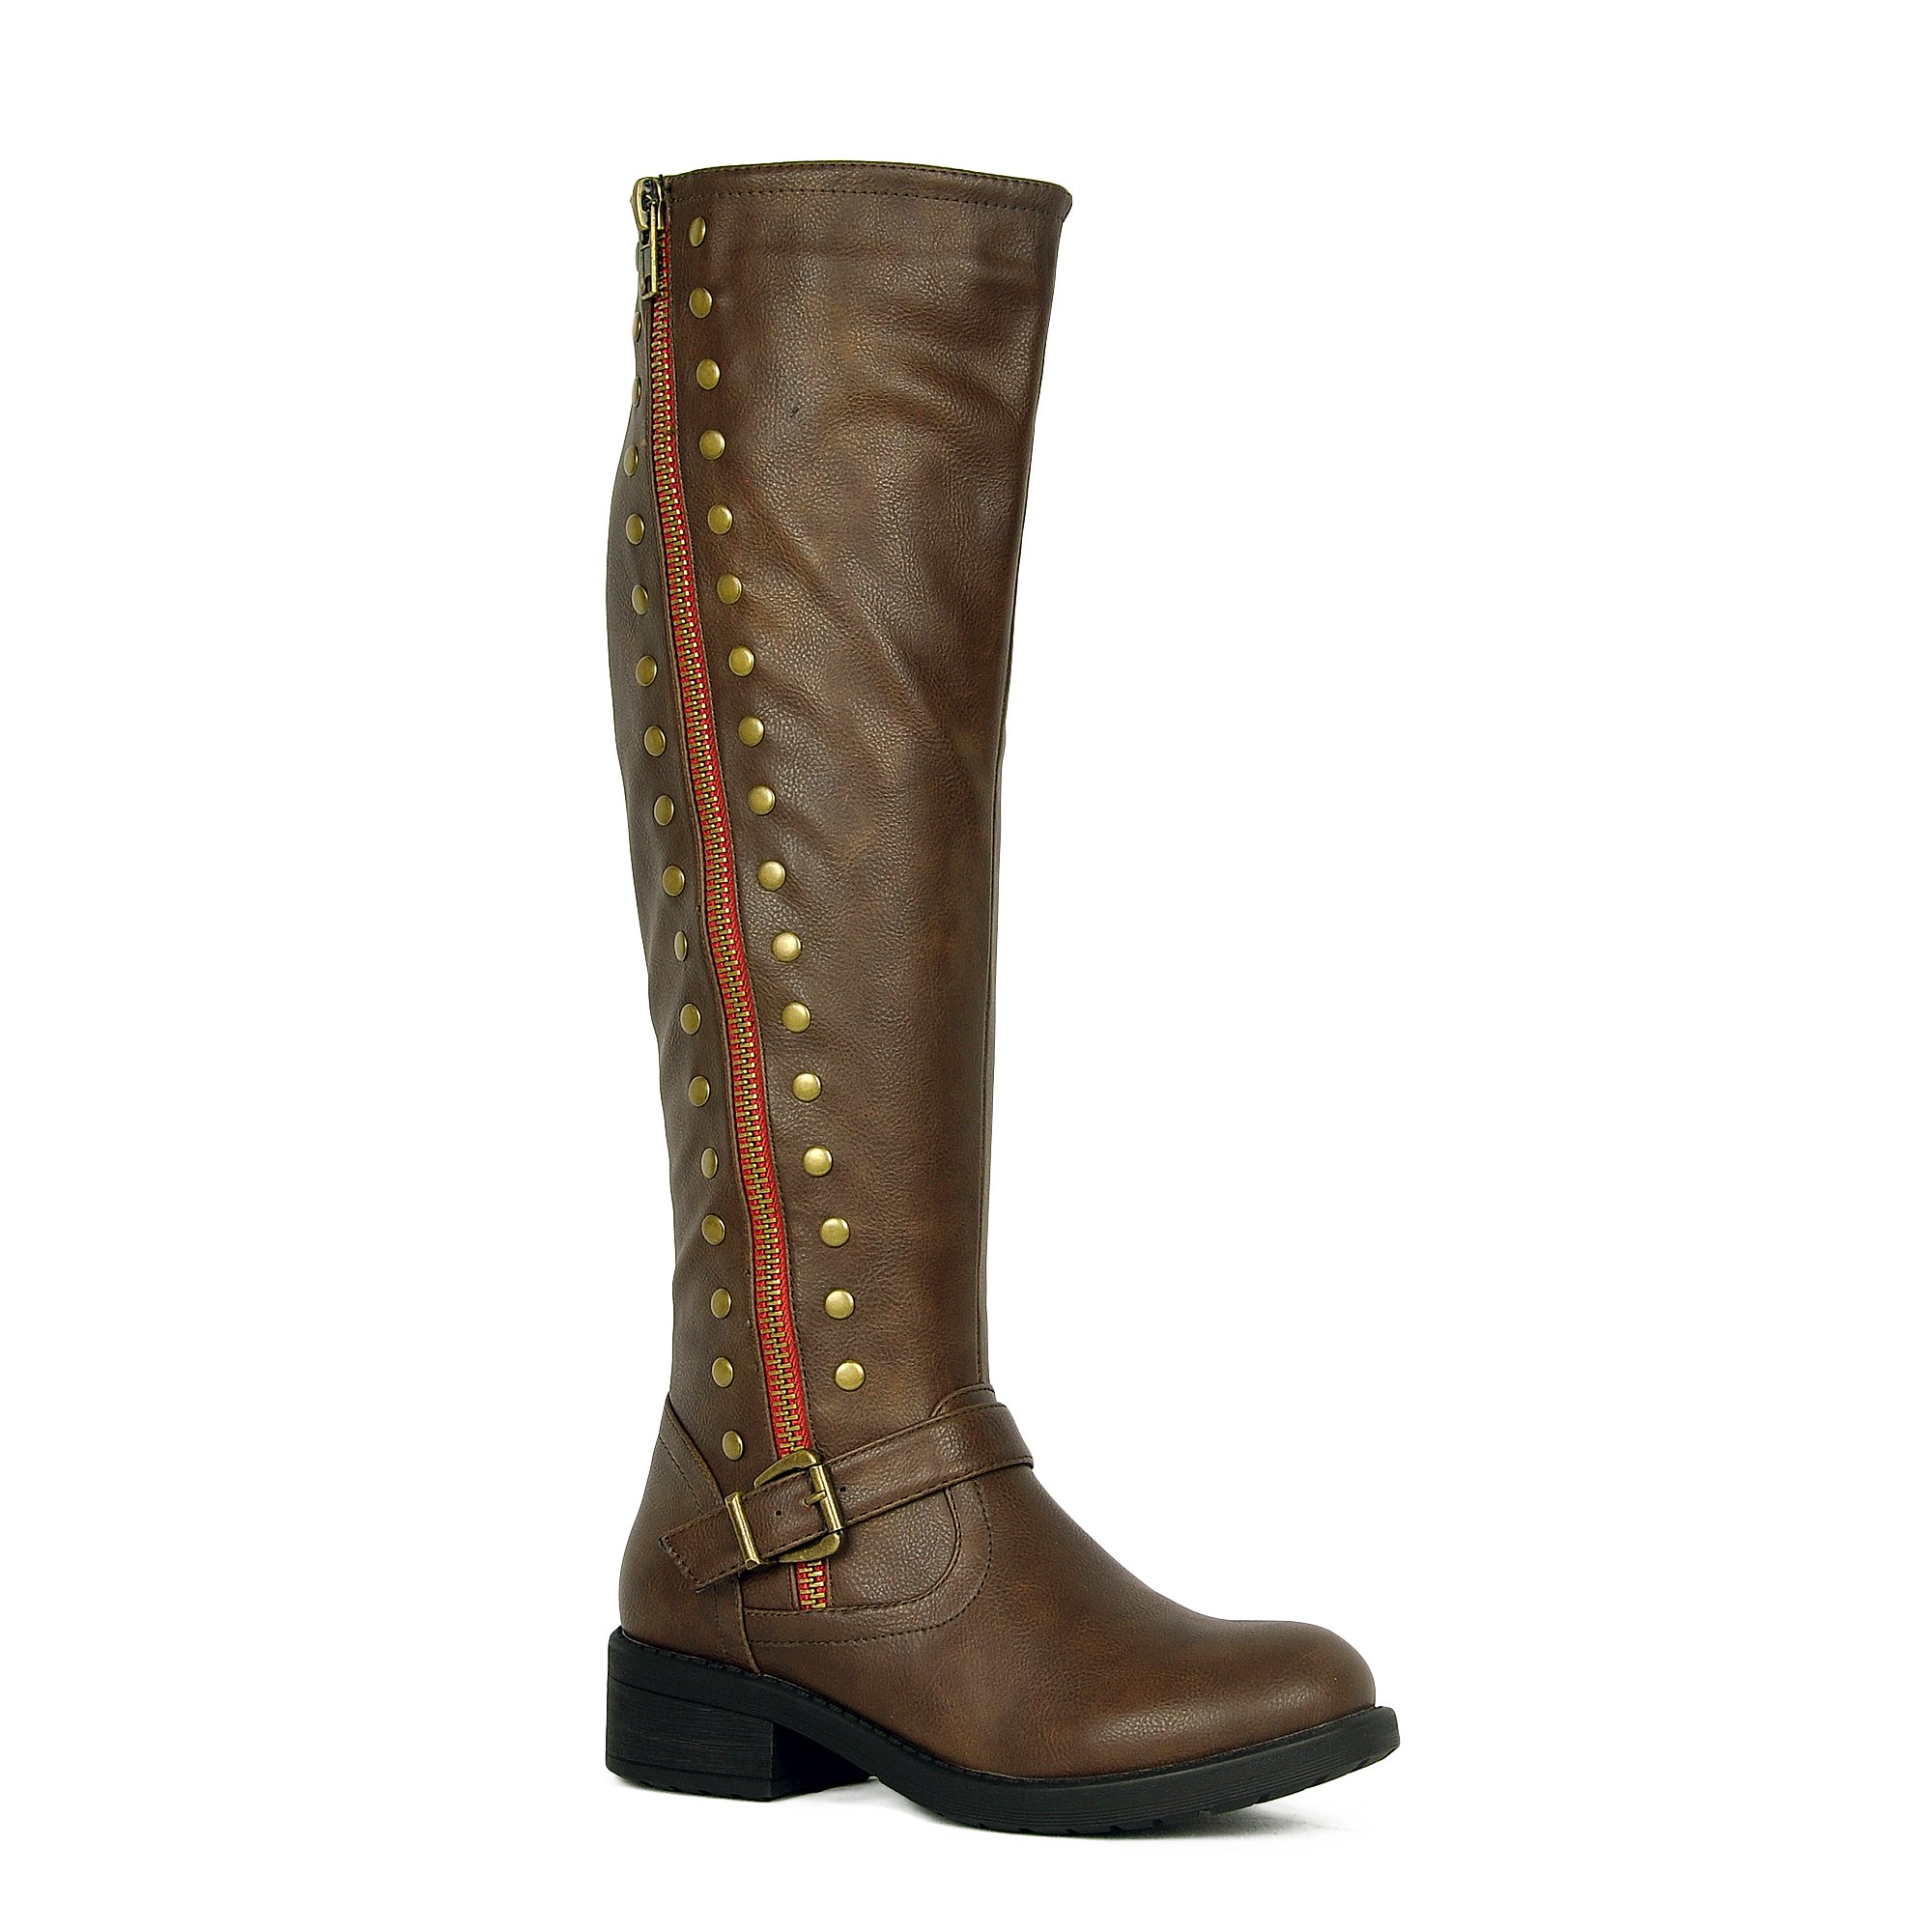 WestCoast Women's Knee High Riding Boot Faux Leather Side Zipper Low Heel Boots Brown 8